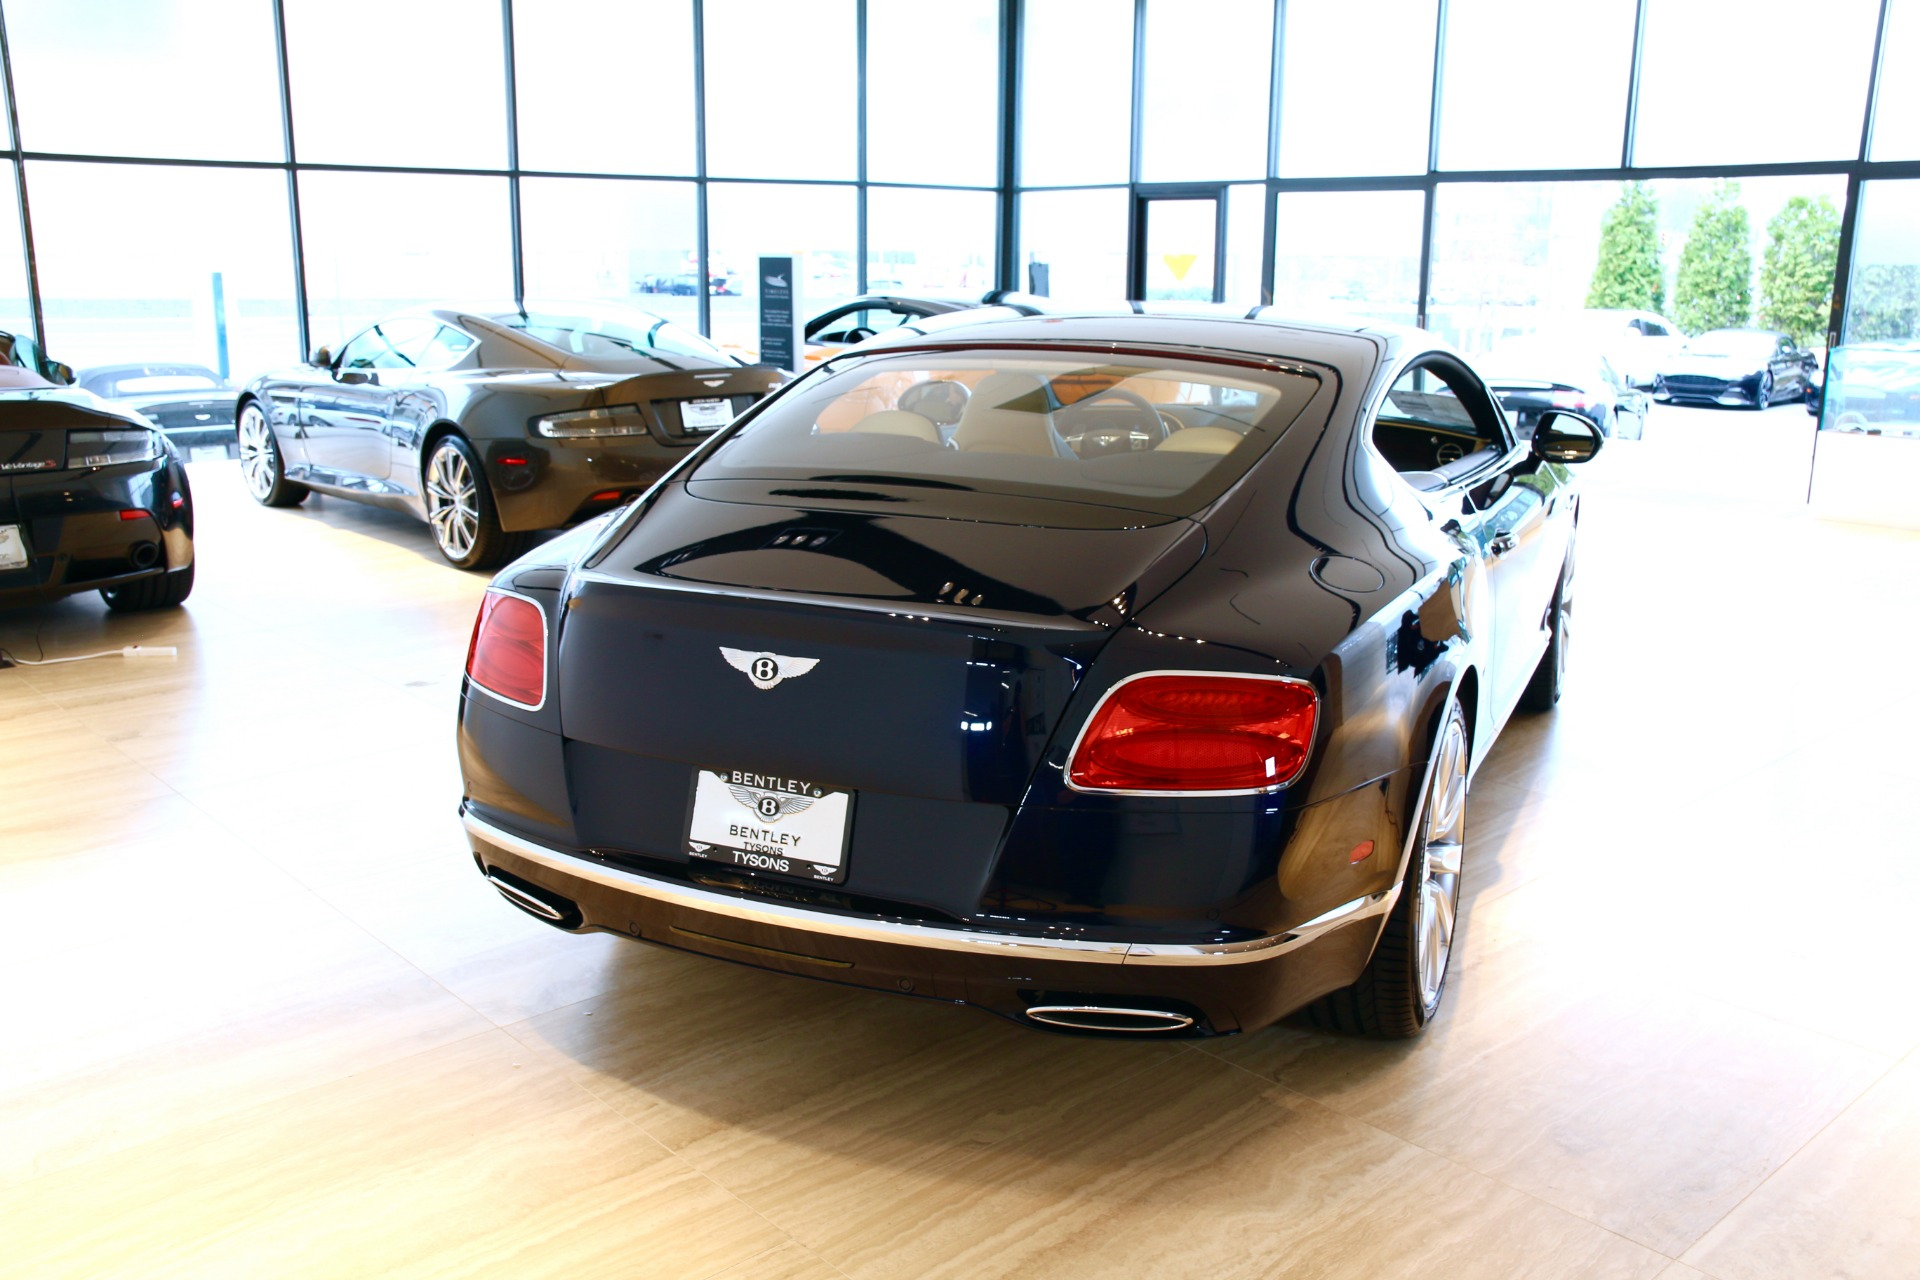 used supersports calgary alberta inventory in sale continental bentley for